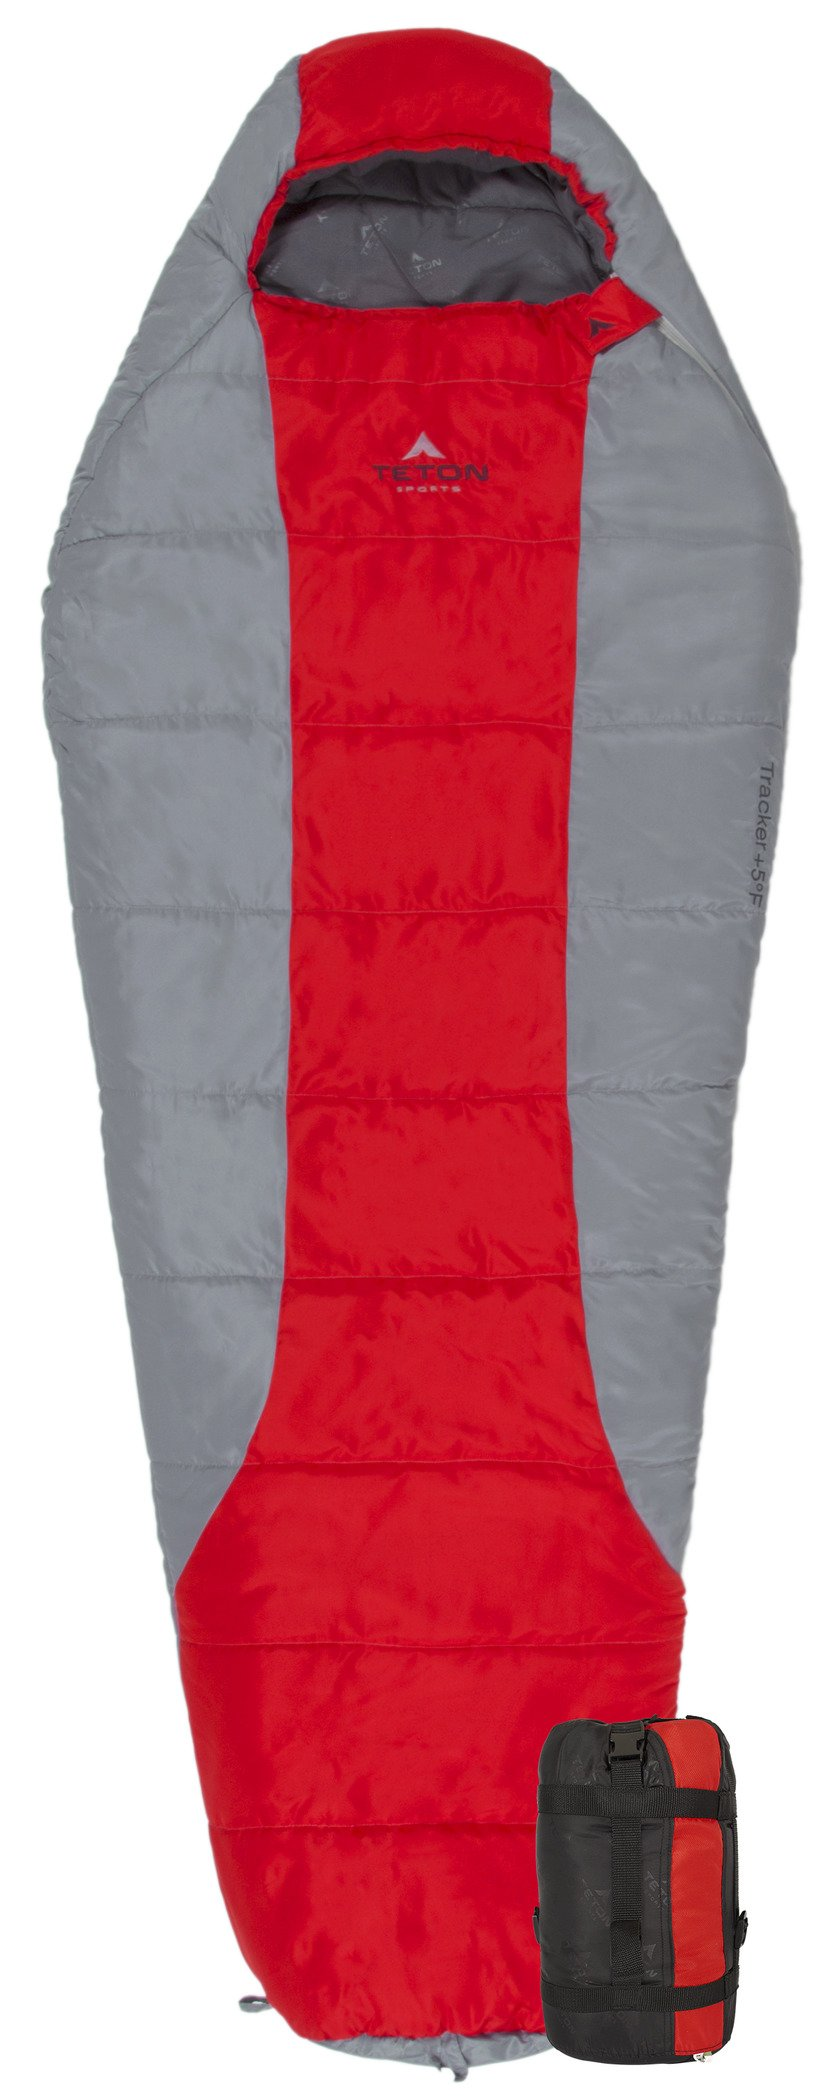 TETON Sports Tracker Scout Ultralight Mummy Sleeping Bag; Lightweight Backpacking Sleeping Bag for Hiking and Camping Outdoors; All Season Mummy Bag; Sleep Comfortably Anywhere; Red/Grey